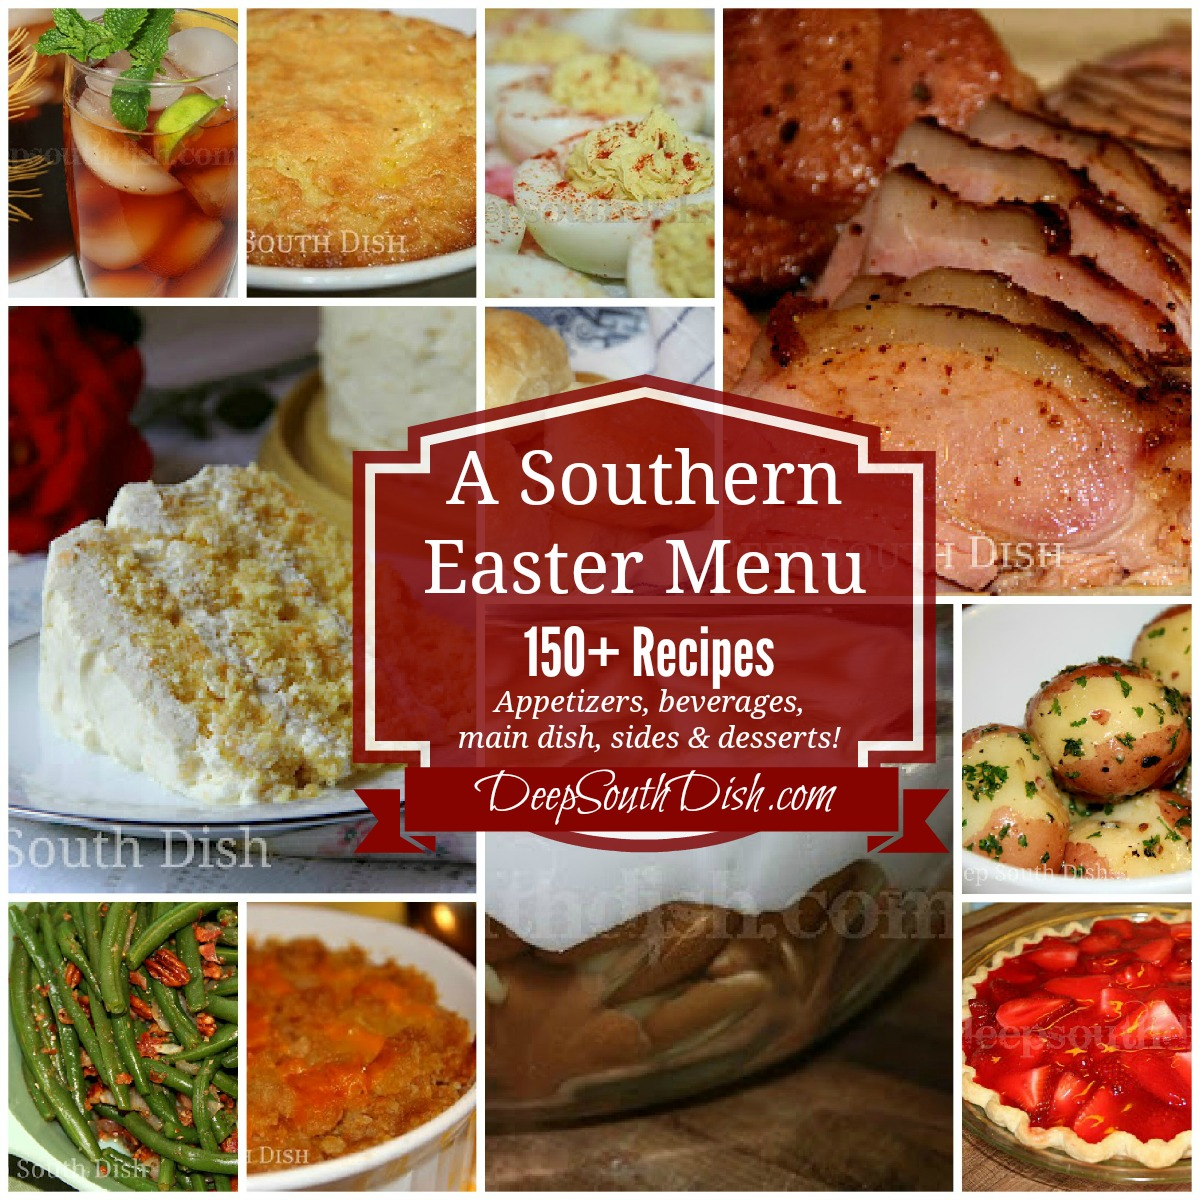 Deep south dish southern easter menu ideas and recipes southern easter menu ideas and recipes forumfinder Choice Image